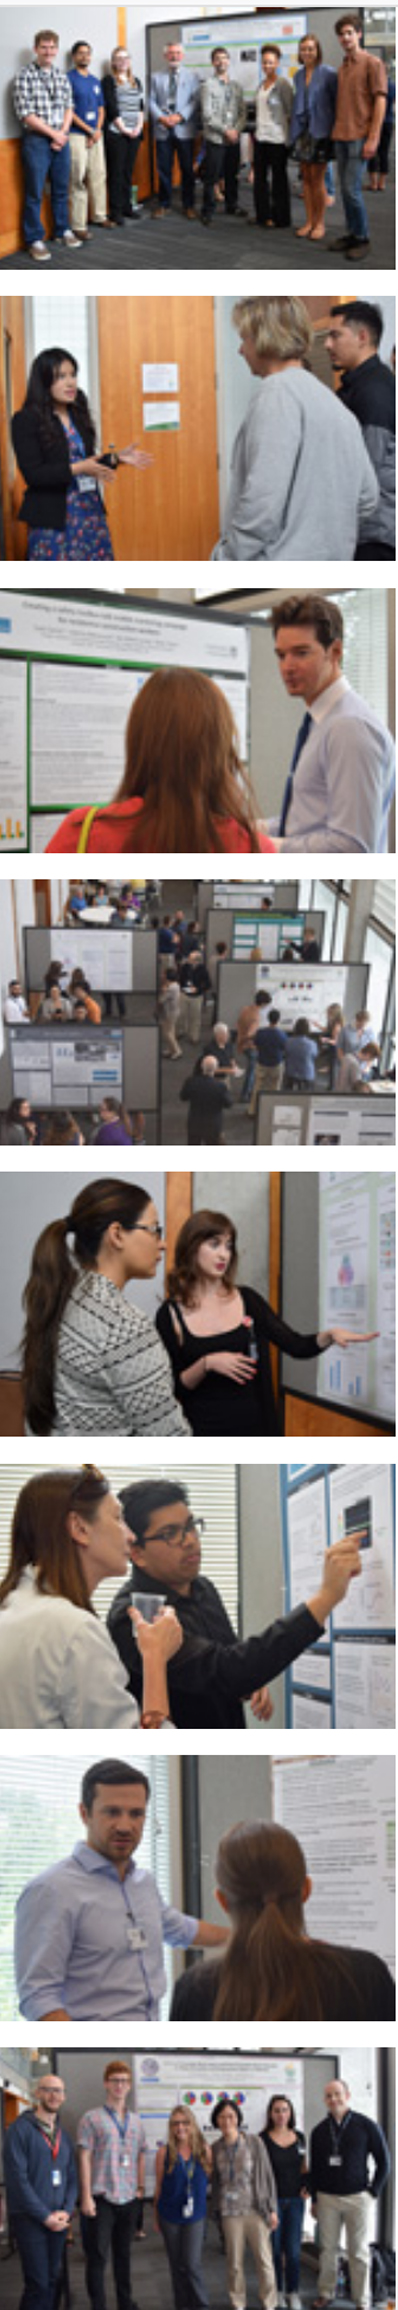 Images from the 2016 summer intern poster session where the interns presented their research in poster form and explained their research to the Institute's faculty and staff